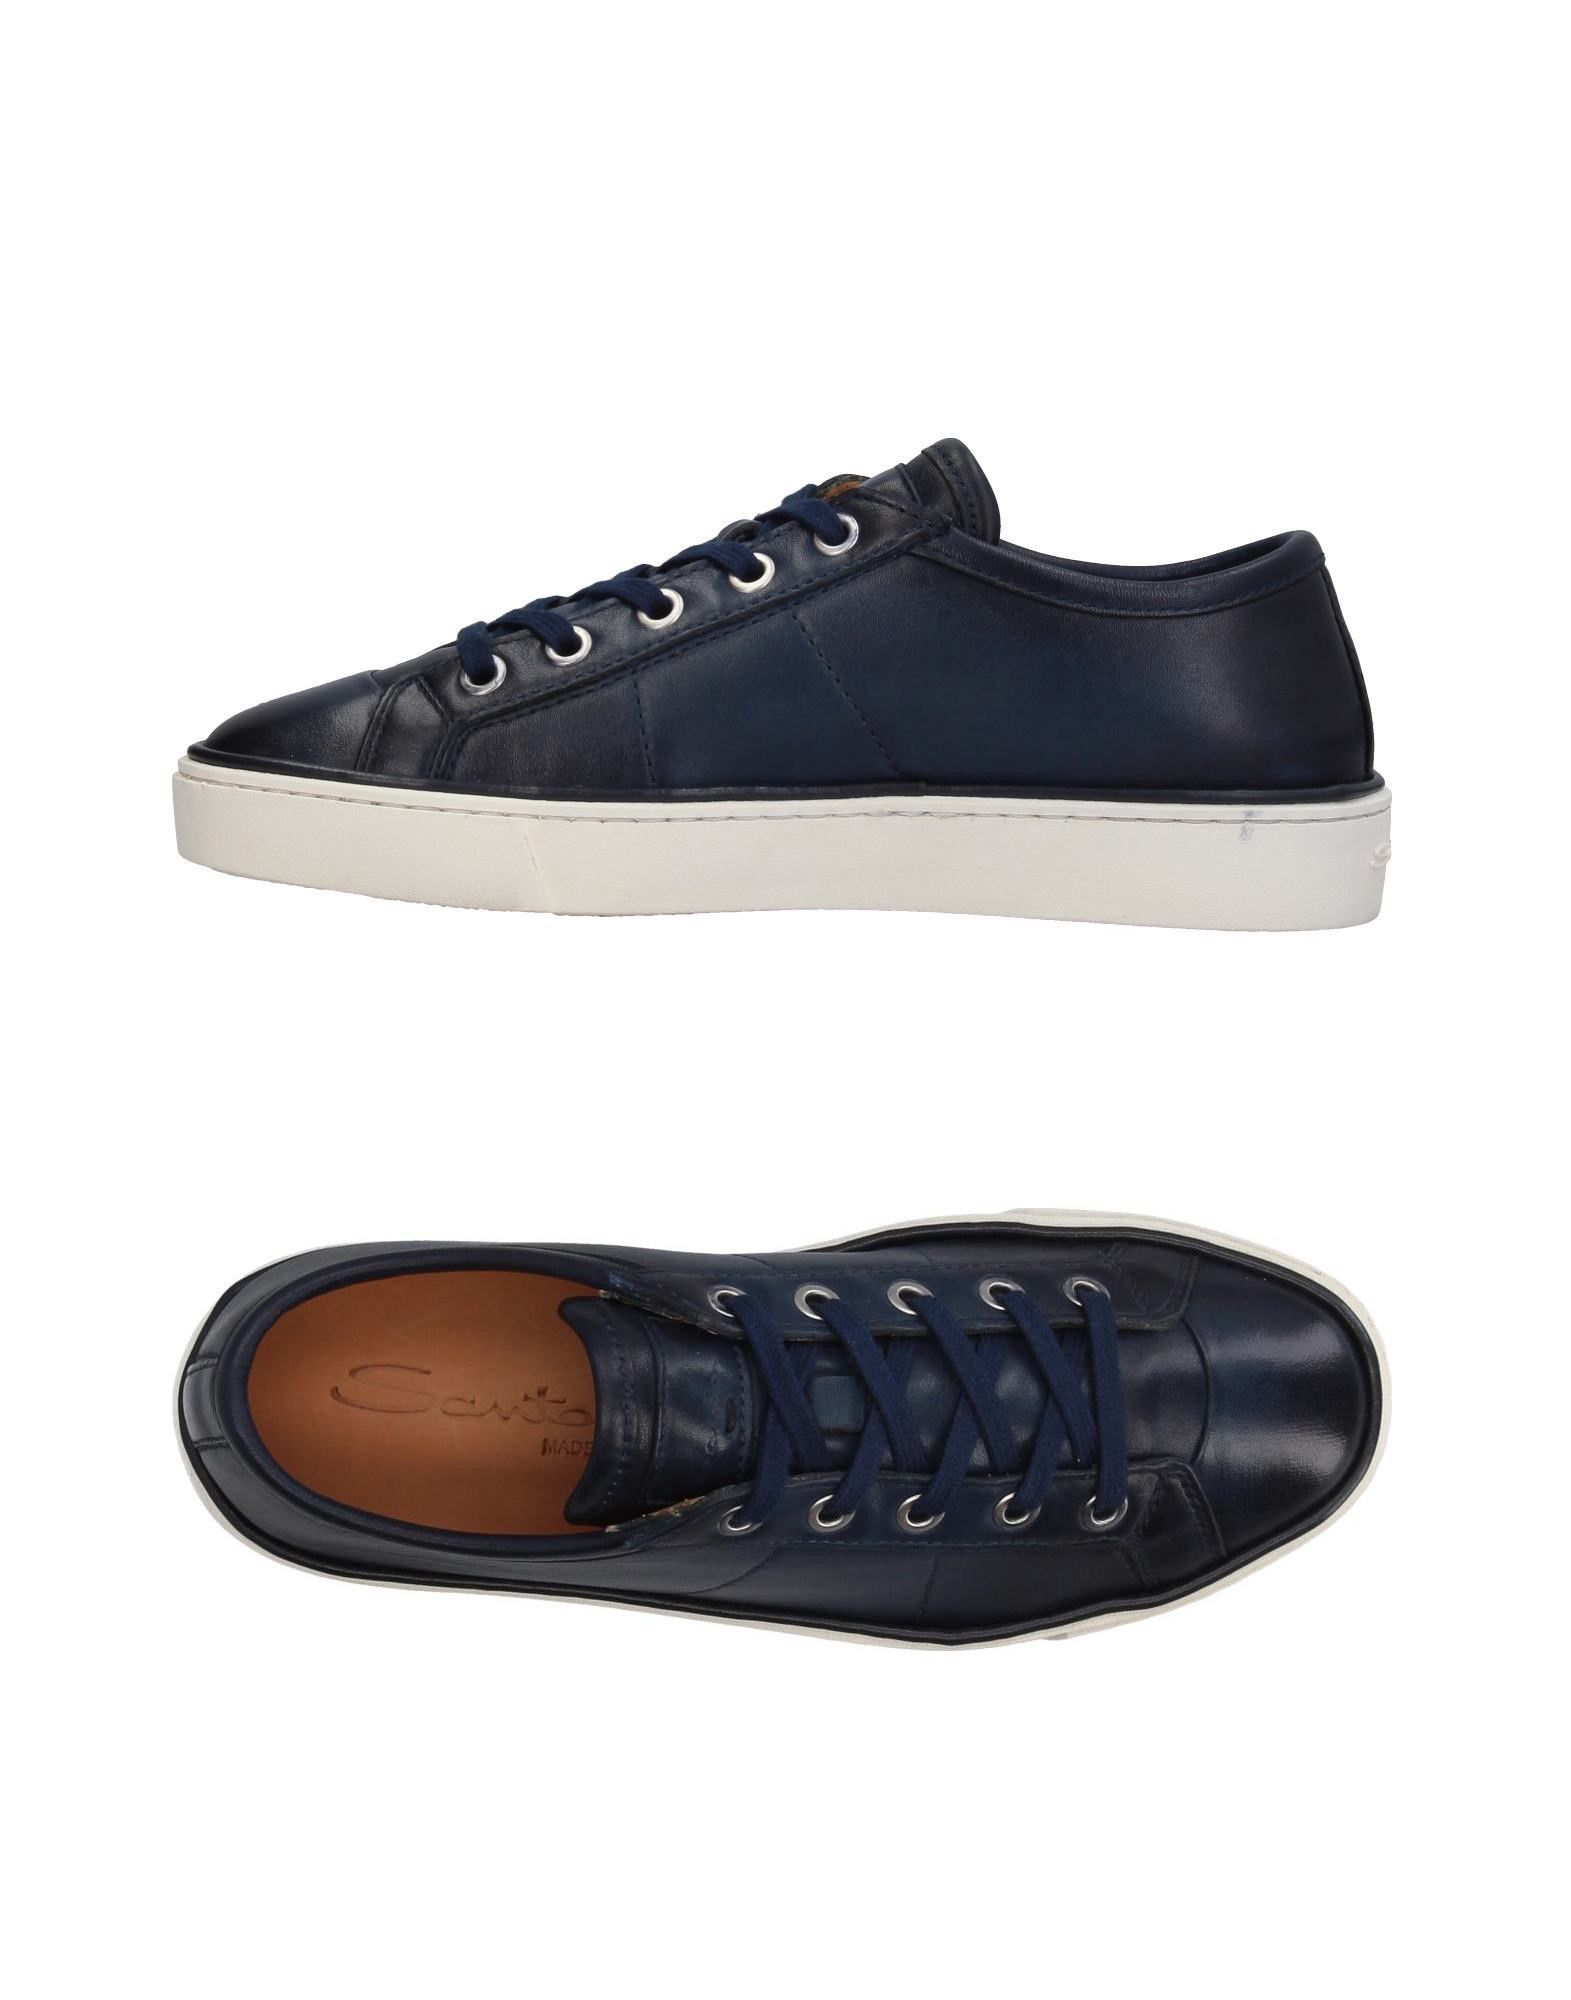 SANTONI Sneakers. logo, solid color, laces, round toeline, flat, leather lining, rubber cleated sole, contains non-textile parts of animal origin, large sized. Soft Leather